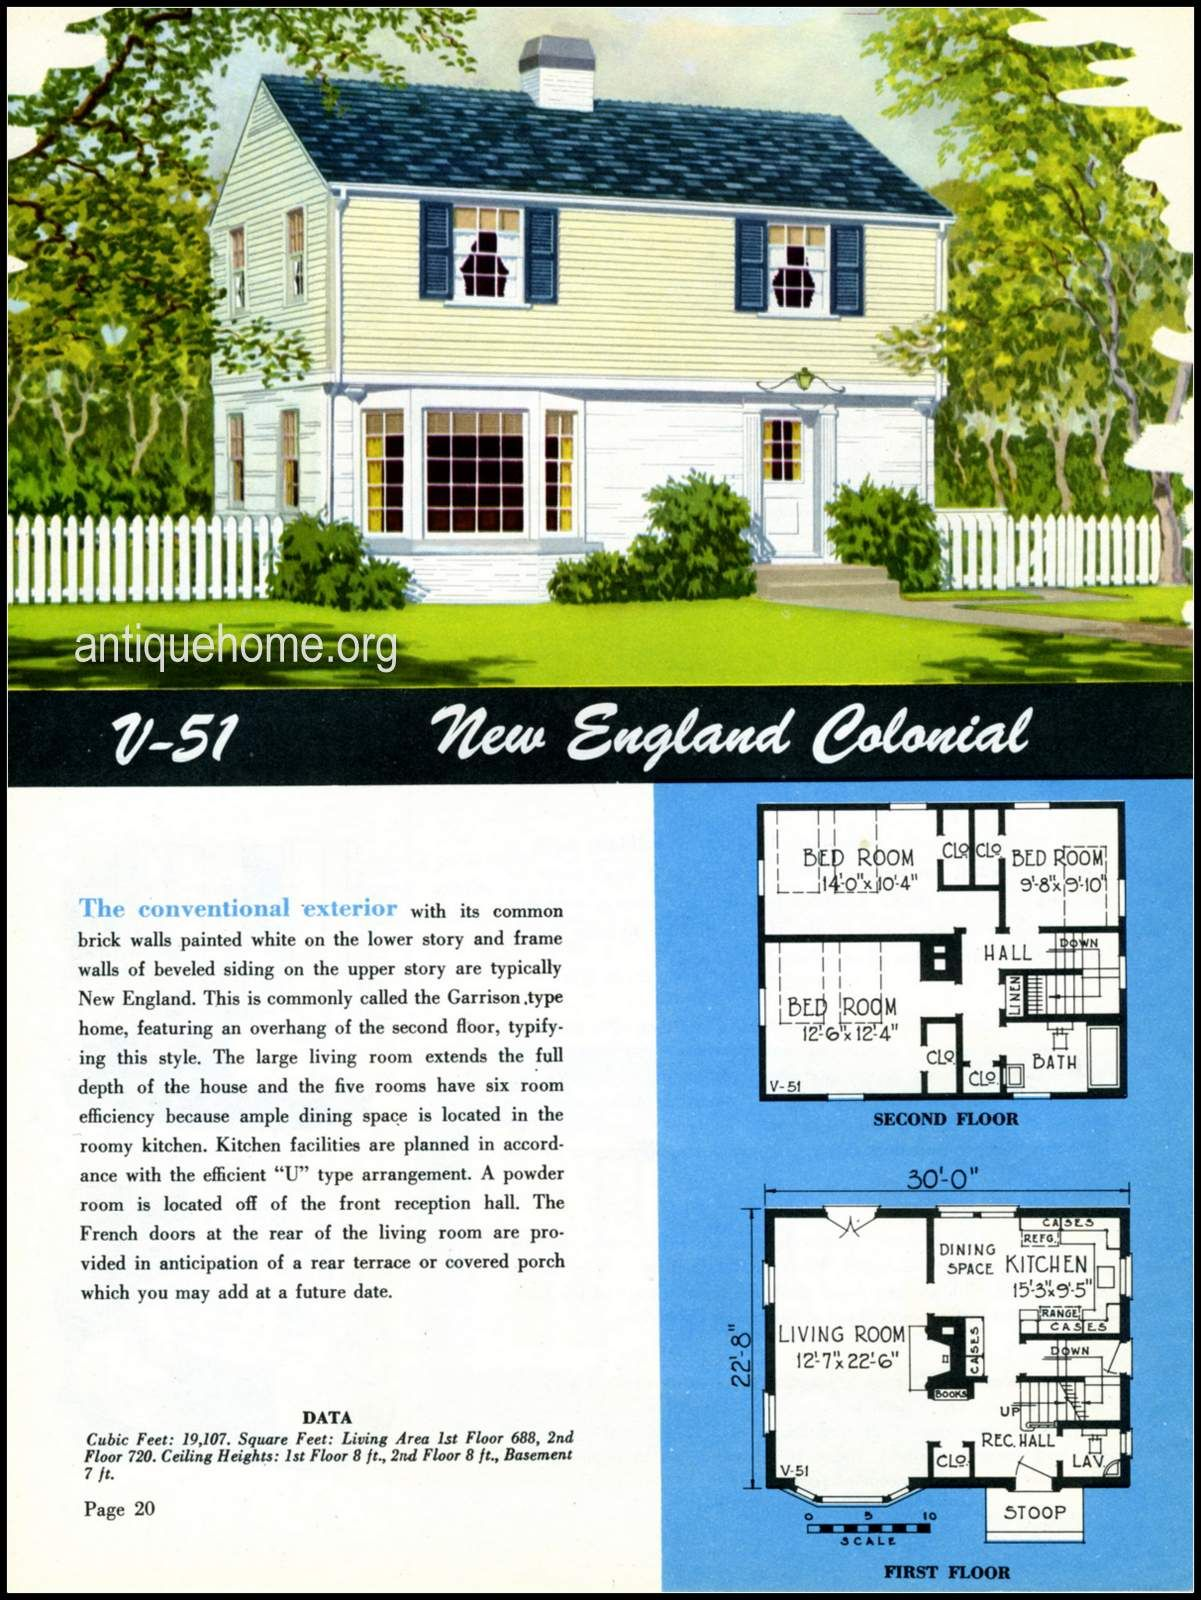 1949 Ranch Style Homes From National Plan Service And Antiquehome Org Early American Homes Vintage House Plans Ranch Style House Plans